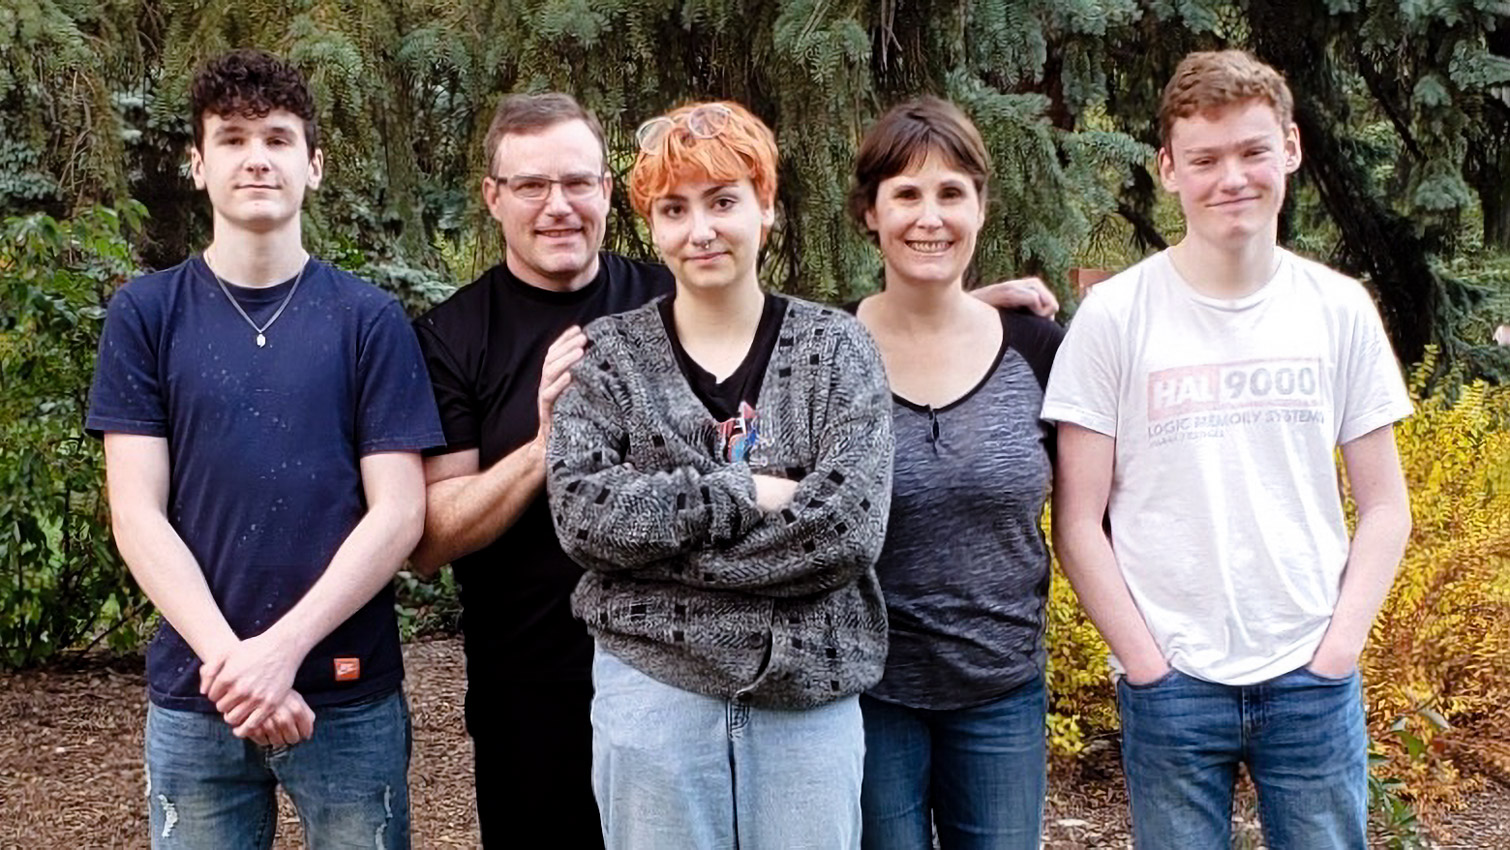 The Biollo family (from left): Alexi (fraternal twin brother), Michael (father), Genève (older sister), Anik (mother), and Zacharie